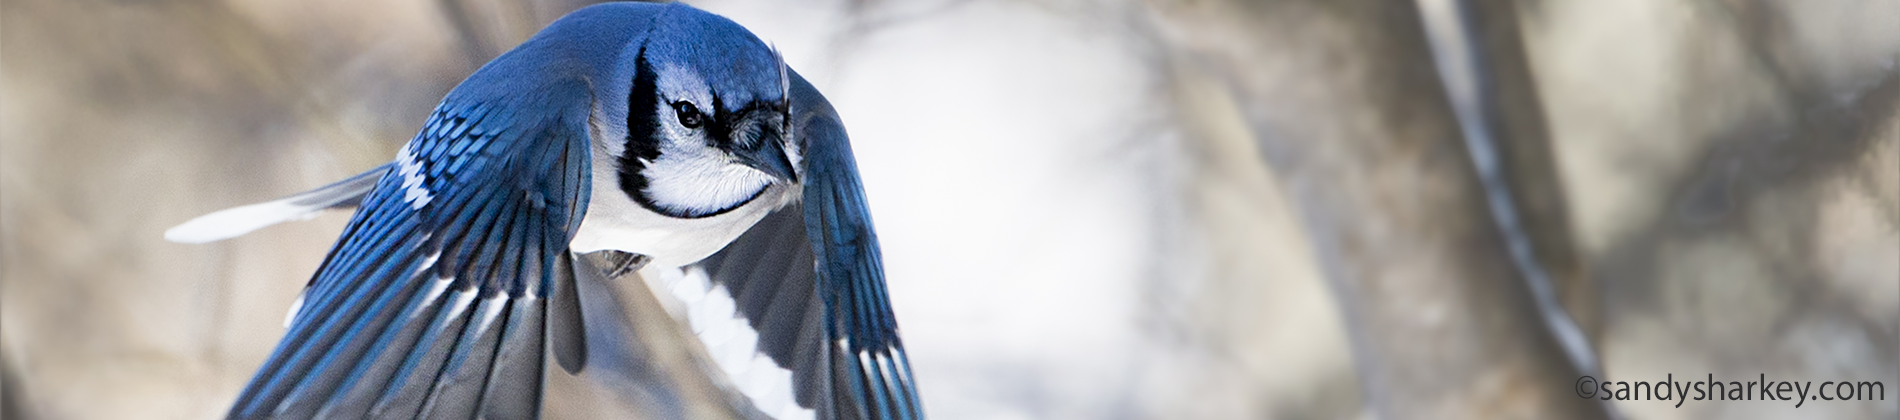 blue jay hi res  (1 of 1)